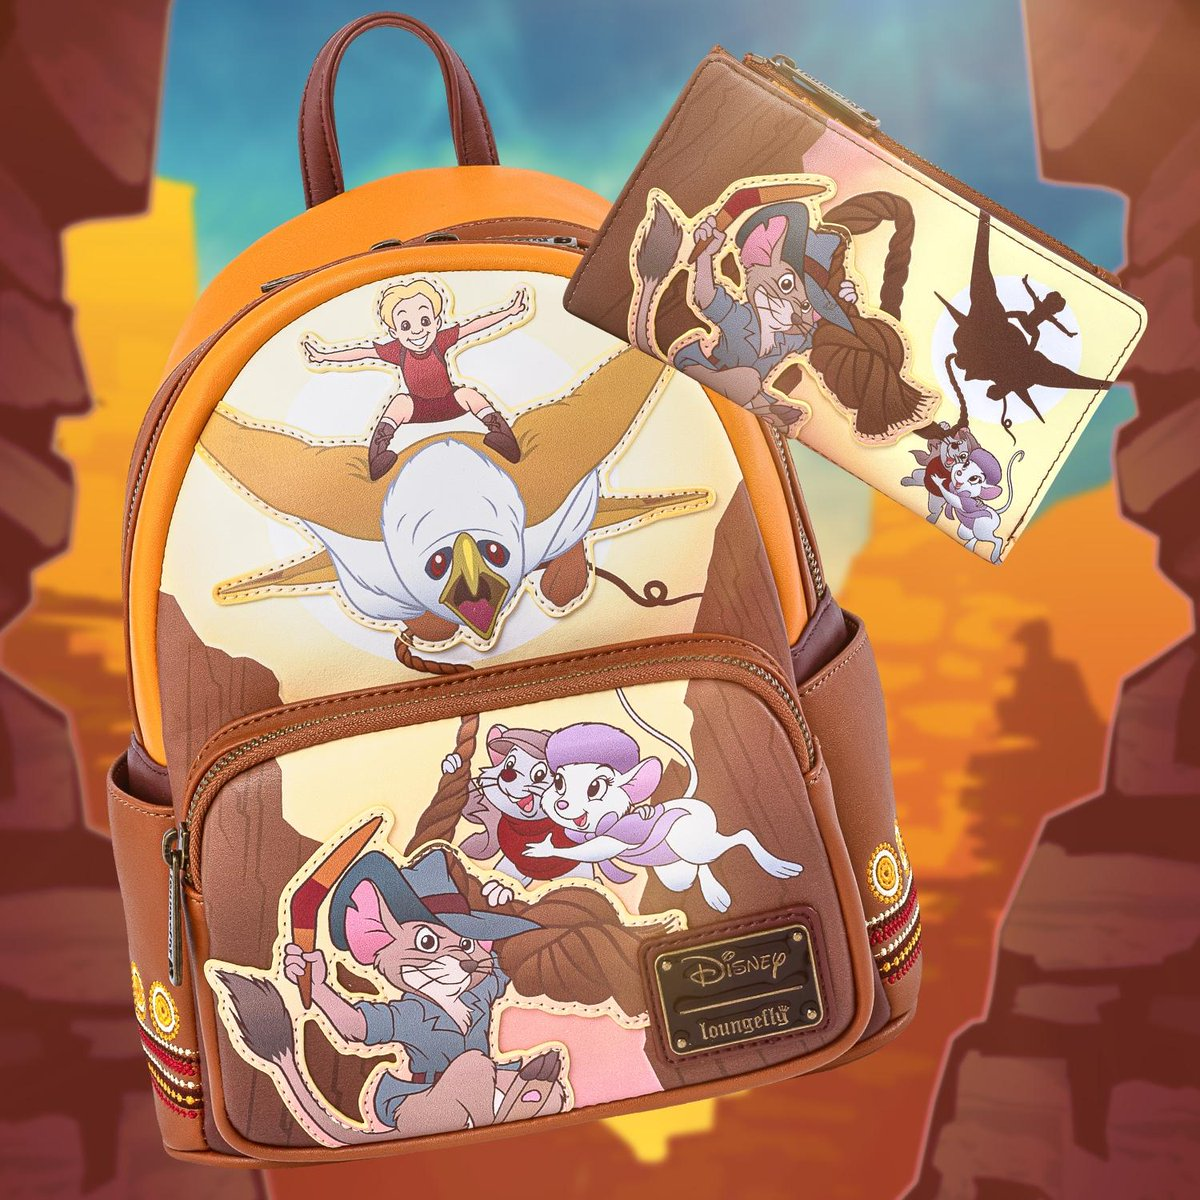 The Rescuers Down Under collection is now available!!! Grab the beautifully embroidered mini backpack and wallet for your many adventures on bit.ly/2T8WXru! 🧡🤎💛#Loungefly #Disney